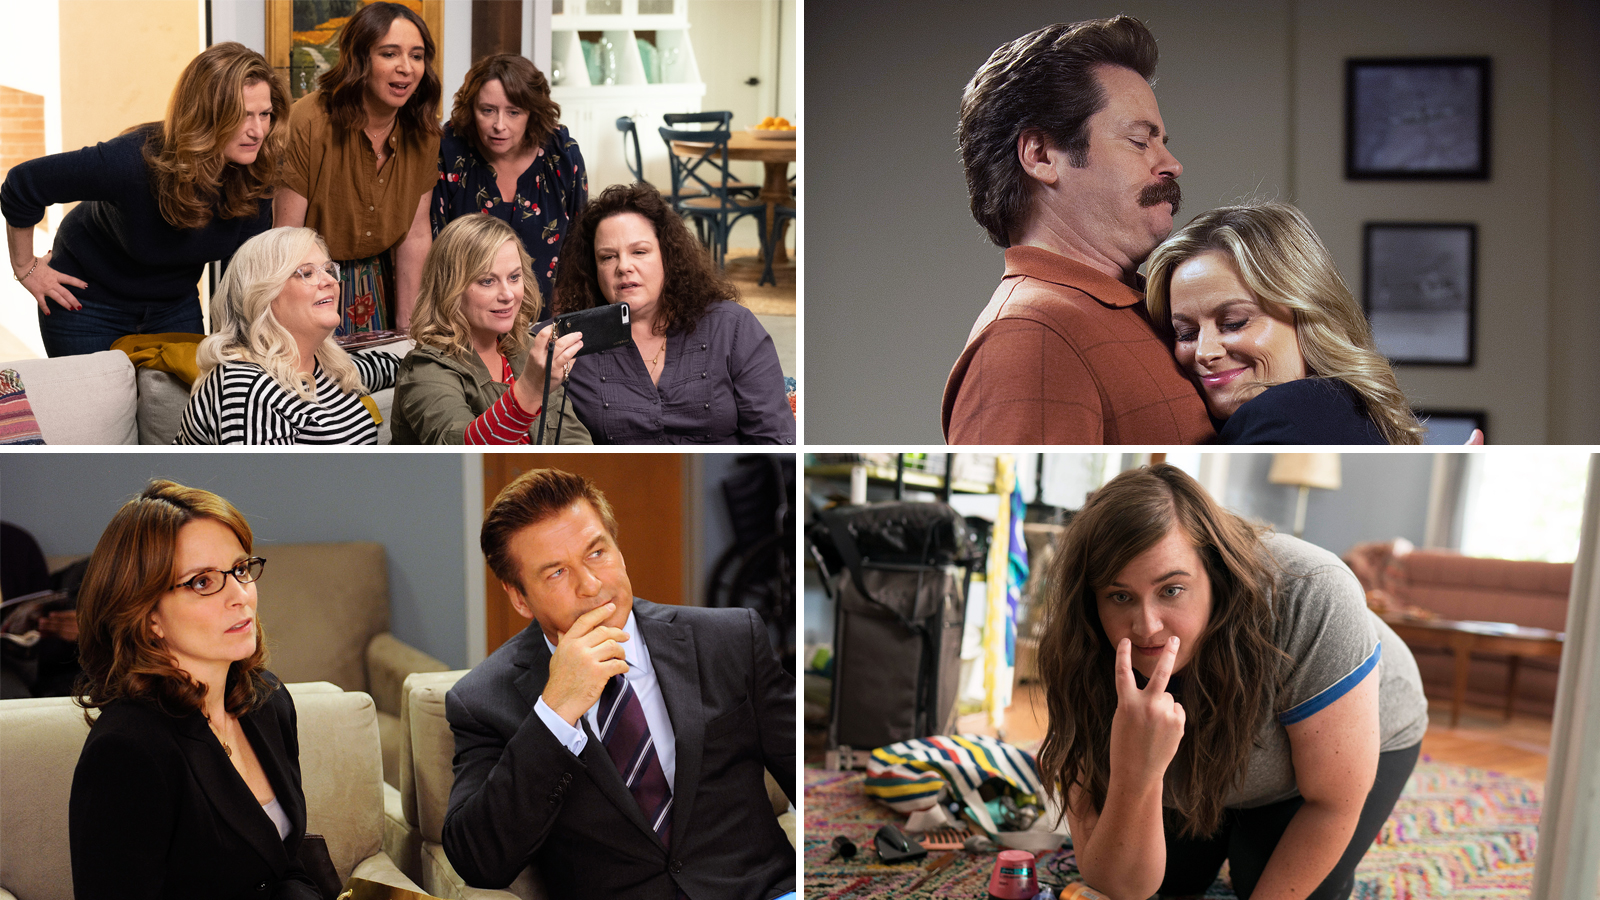 SNL' Stars' Best Movies and TV Shows: We're on a Comedy Kick